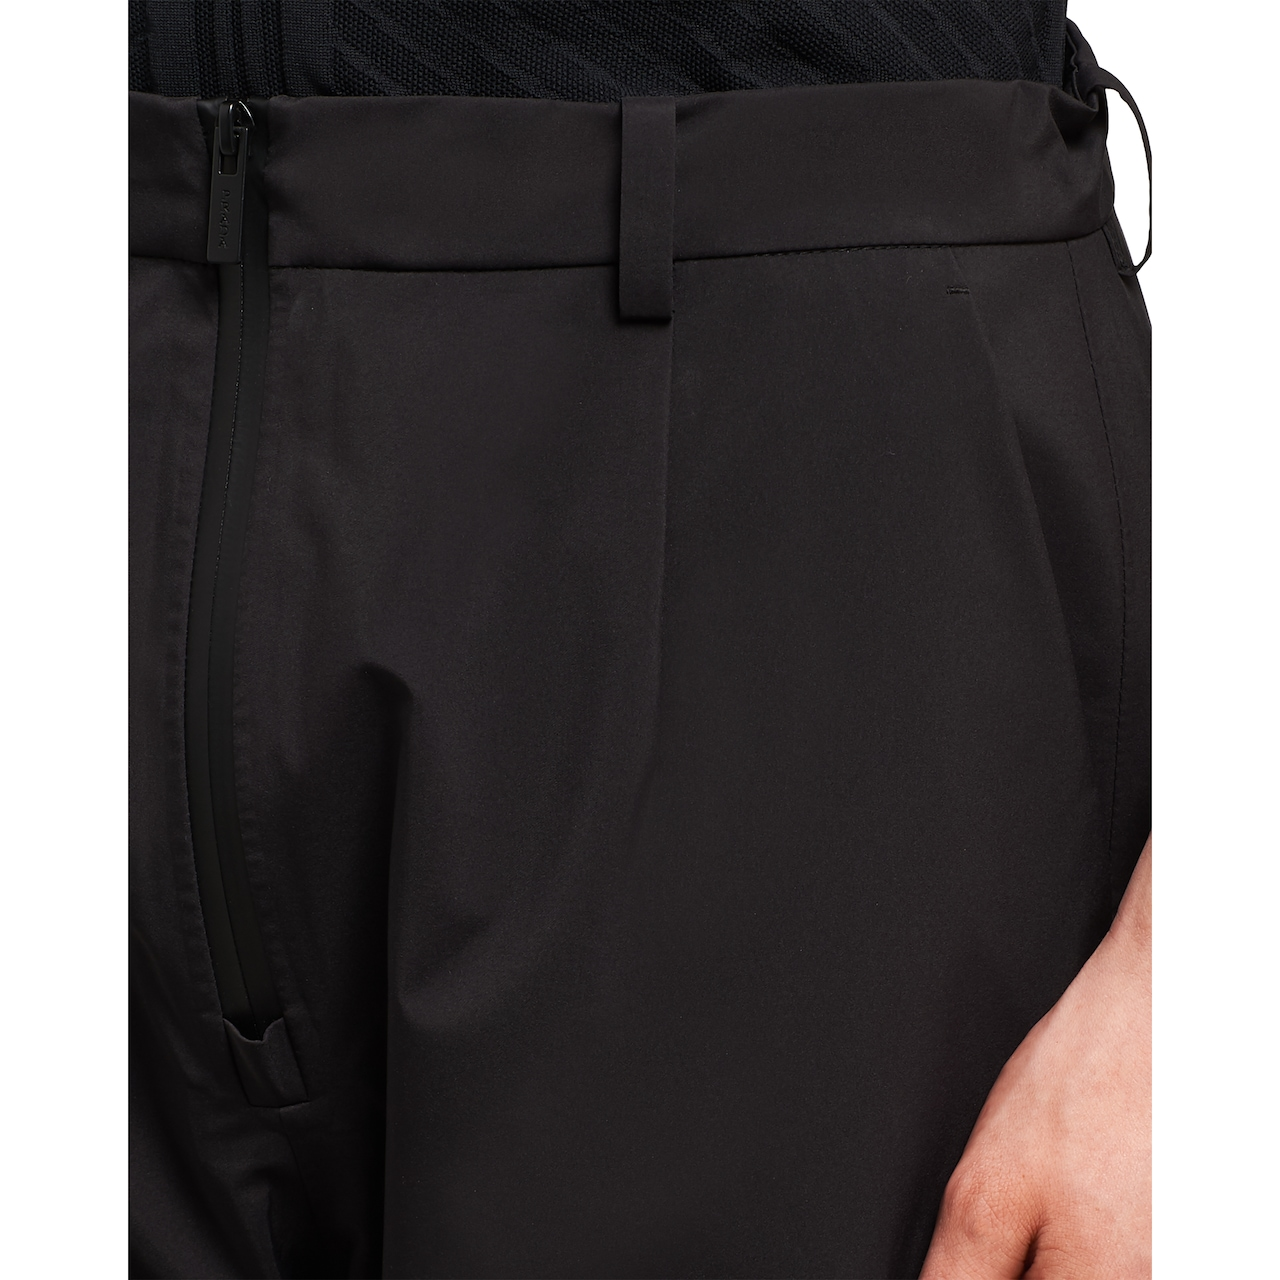 LR-MX013 professional technical fabric trousers